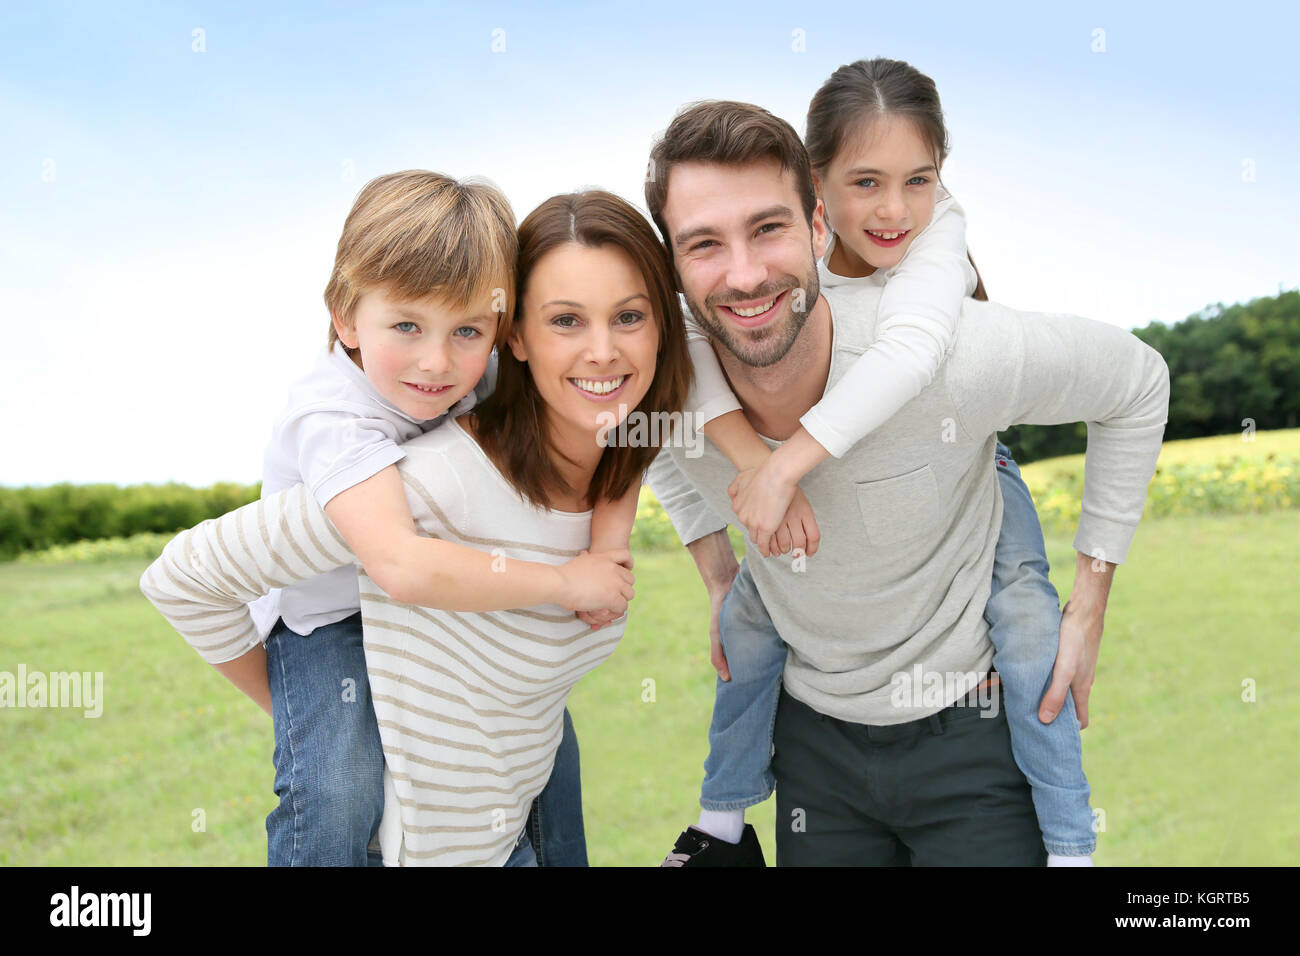 Young parents giving piggyback ride to kids - Stock Image